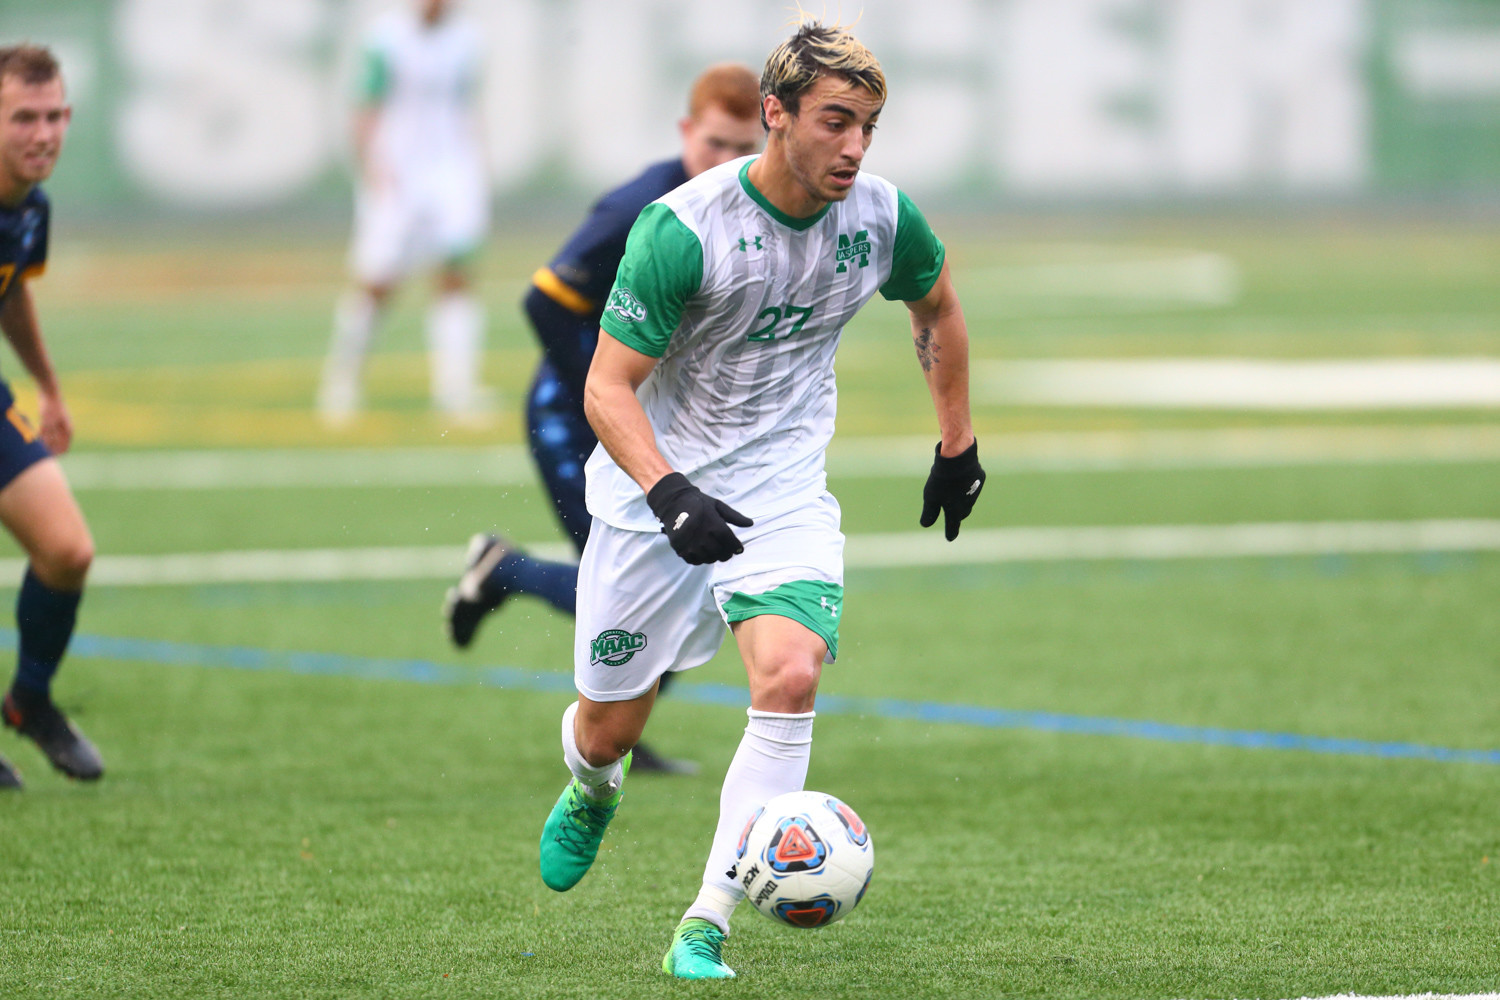 Manhattan's Lucas Da Silva creates a path upfield during the Jaspers' MAAC tournament quarterfinal game versus Quinnipiac at Gaelic Park.